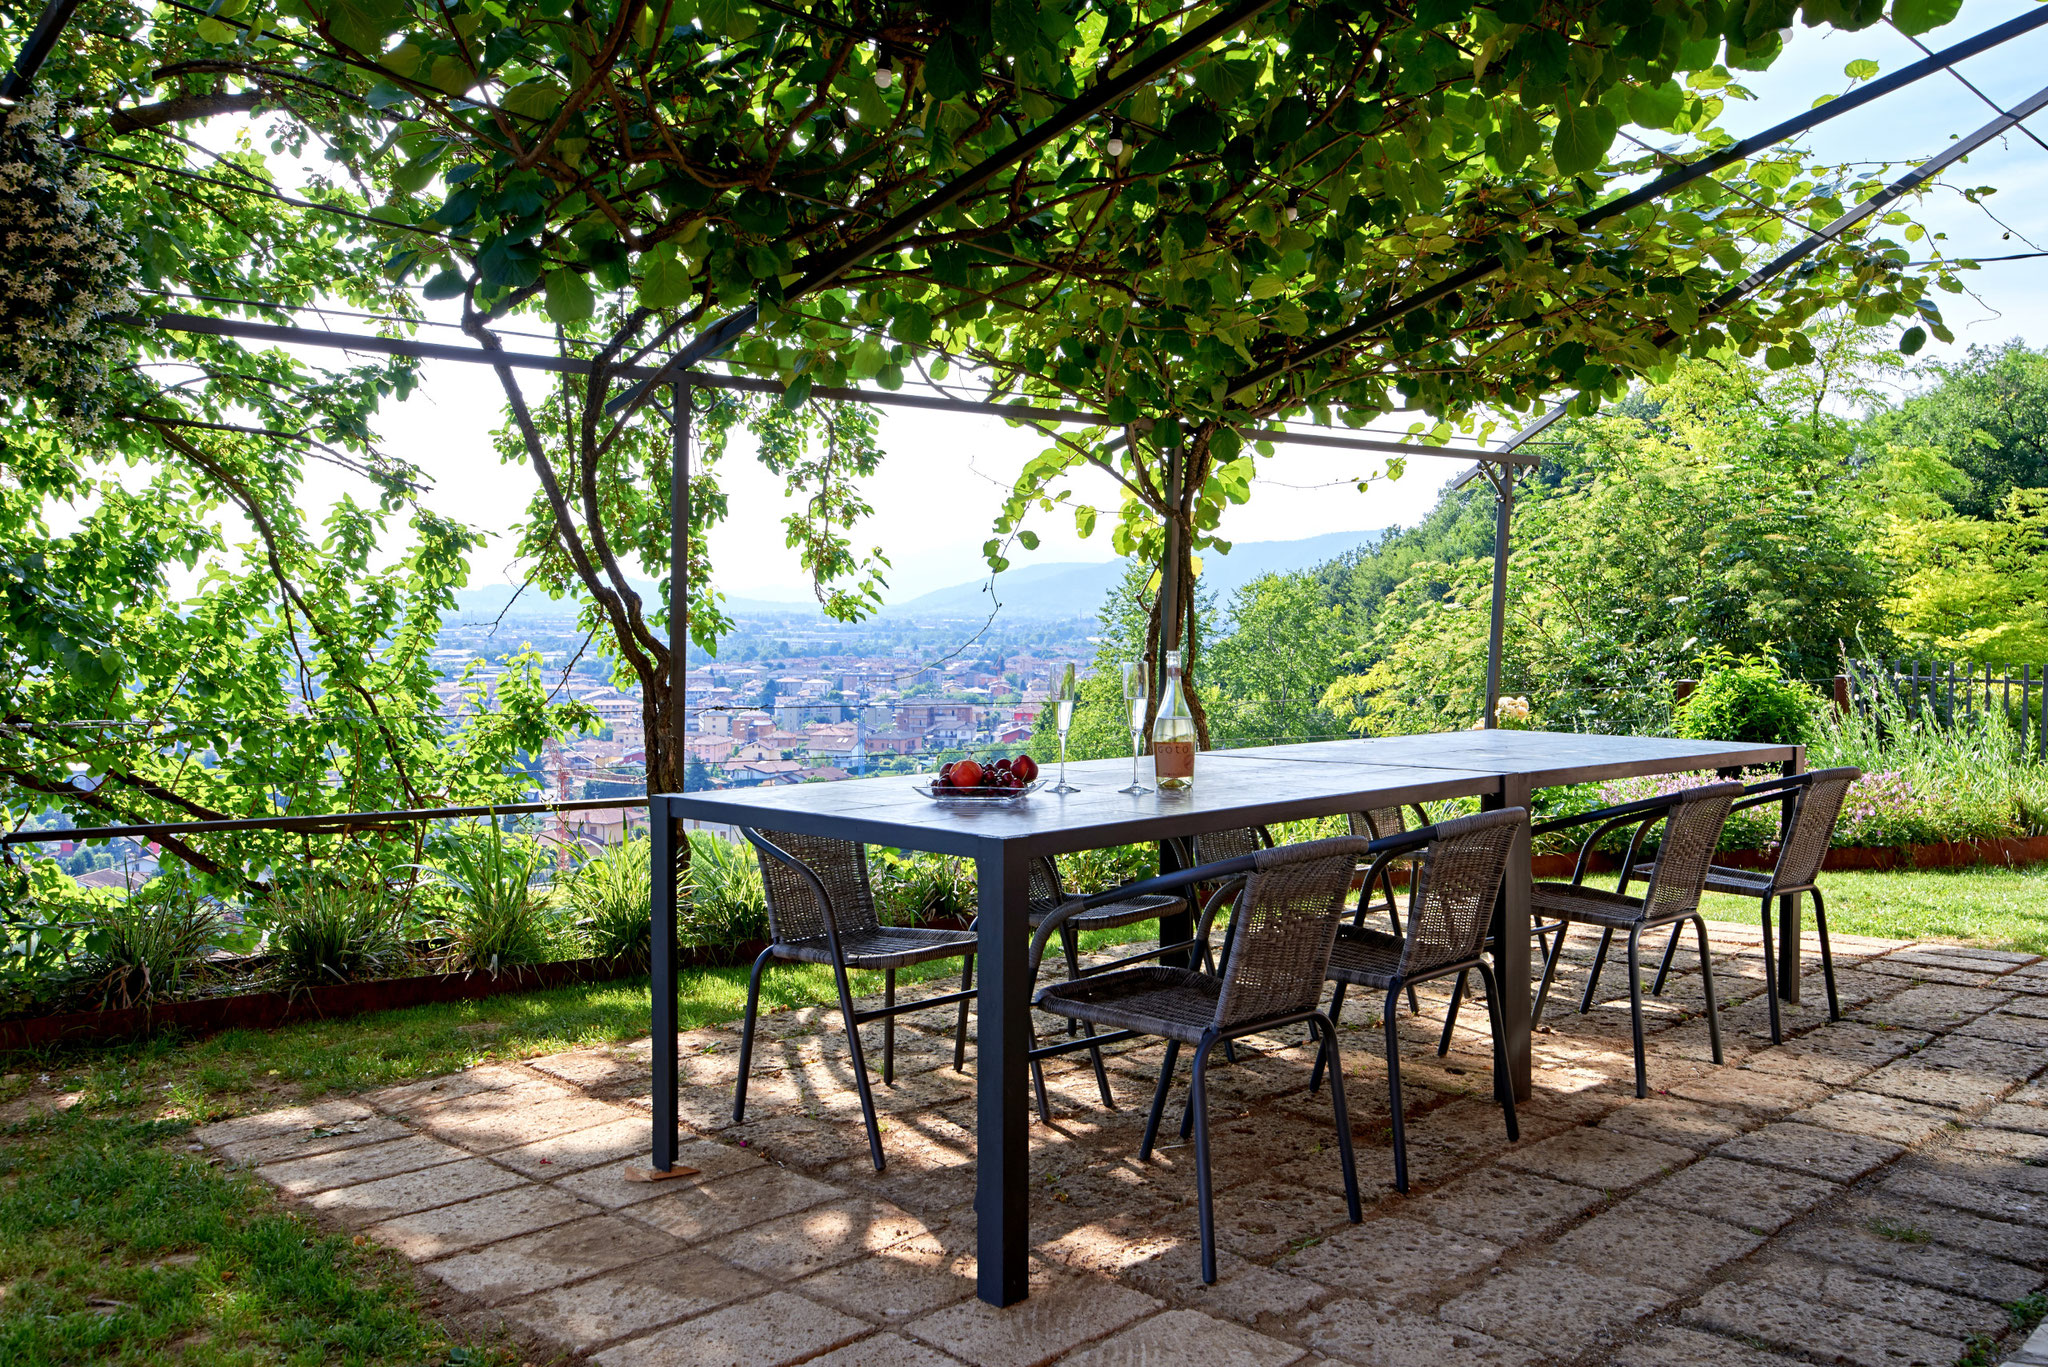 Casa San Giorgio Holiday House - Bedroom Holiday House AIR BNB Bed Breakfast Bergamo